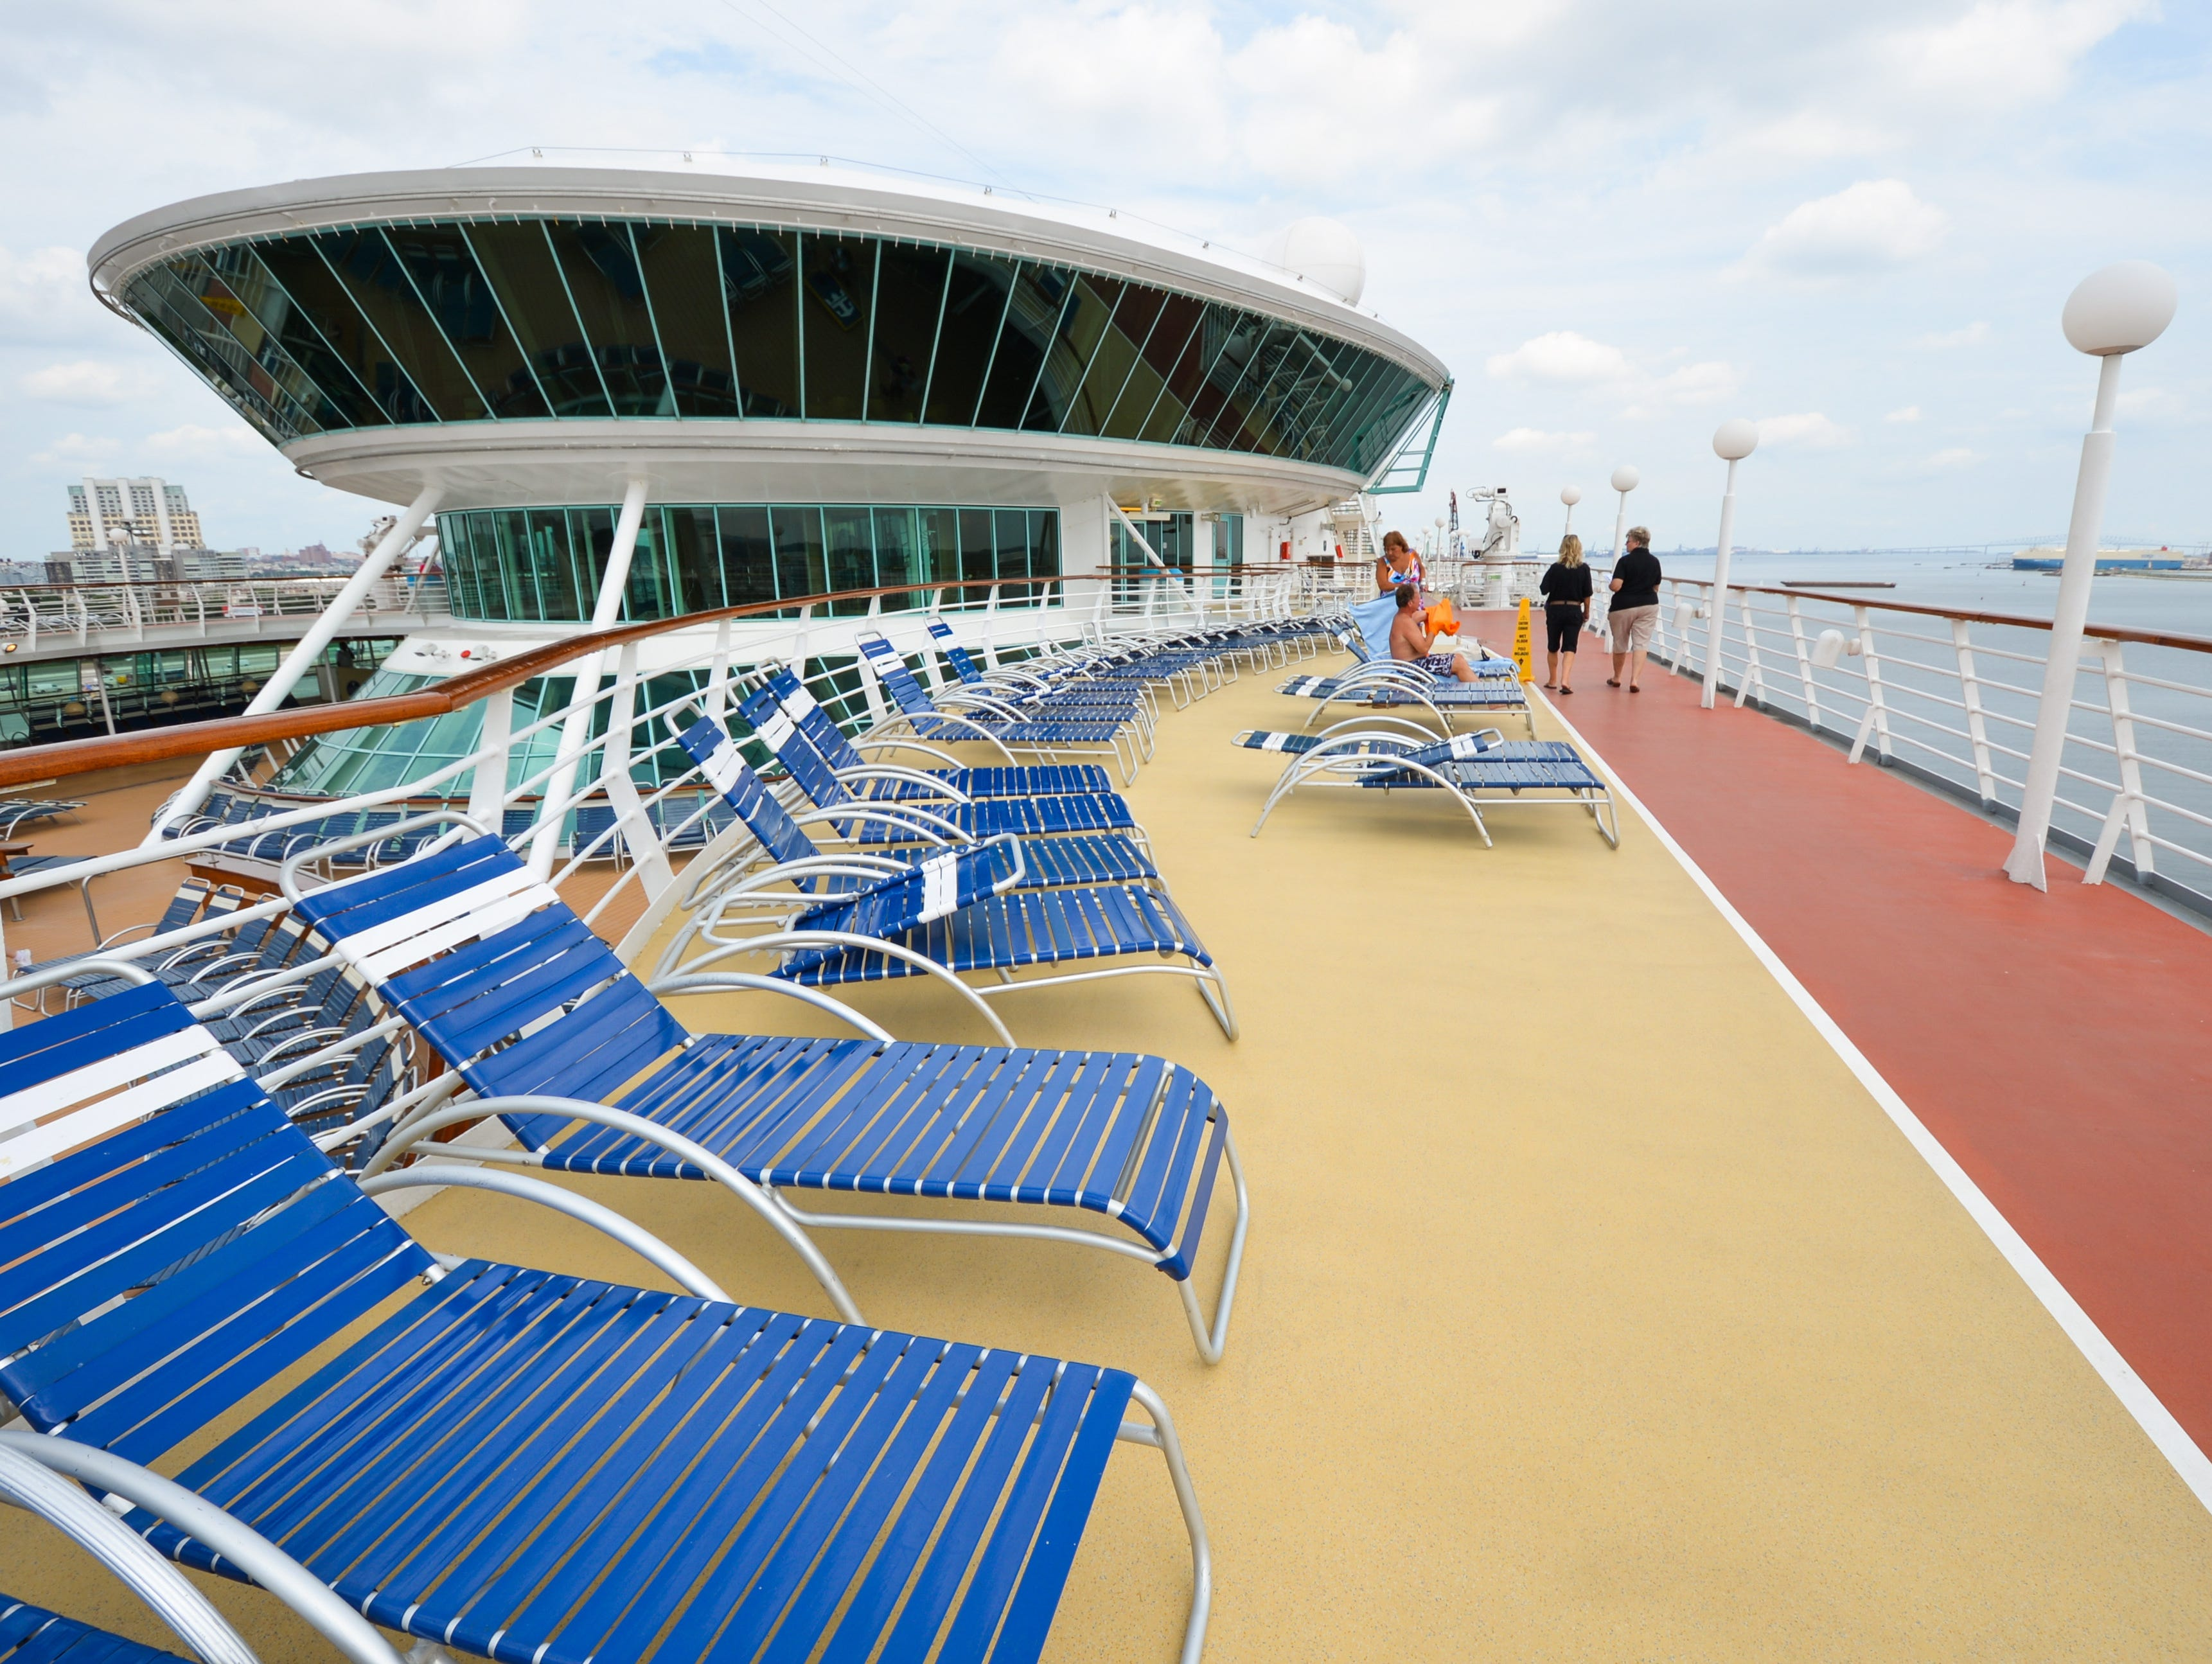 More lounge chairs are available one deck above the pool on Deck 10.